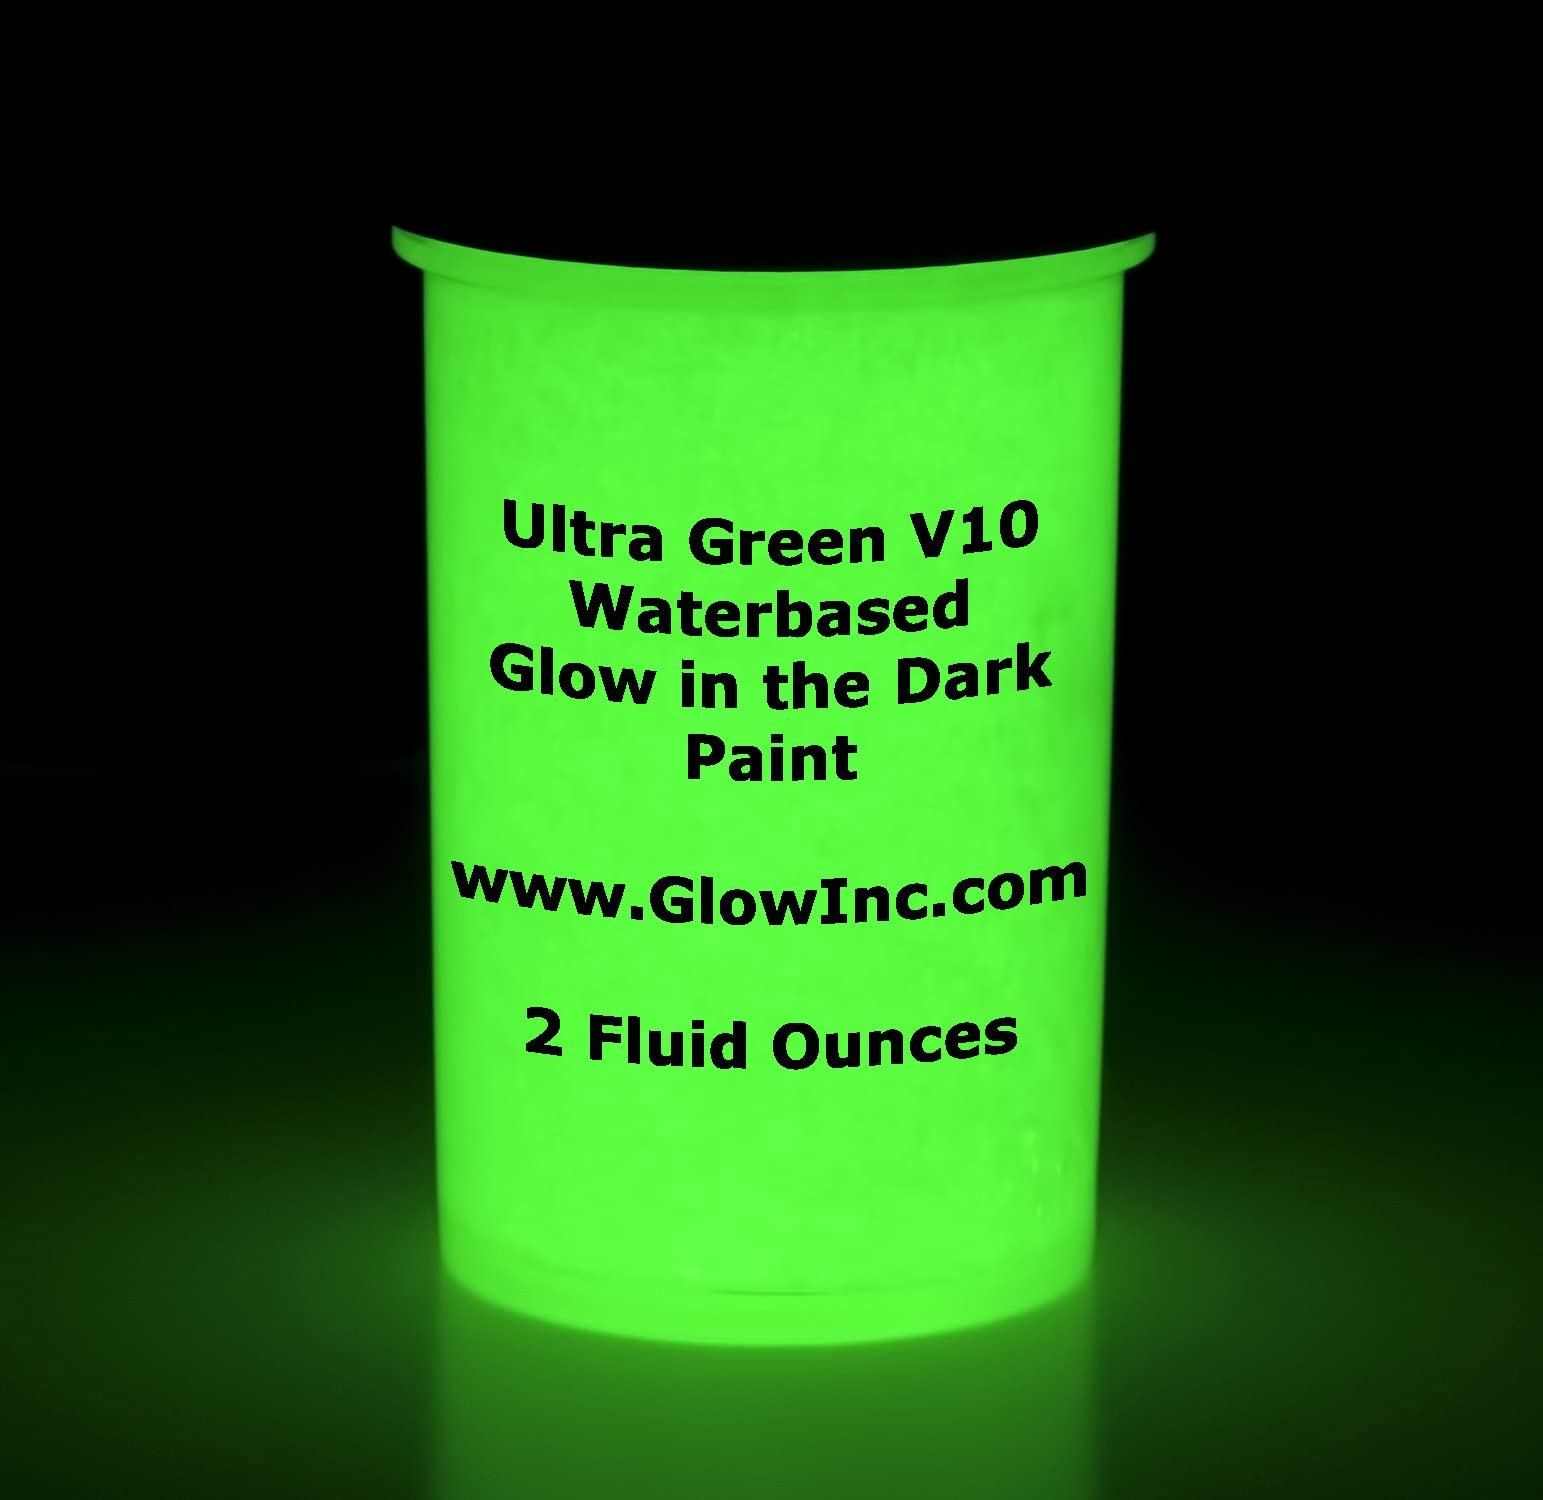 Ultra-green water based glow in the dark paint by Glow Inc 1 Quart